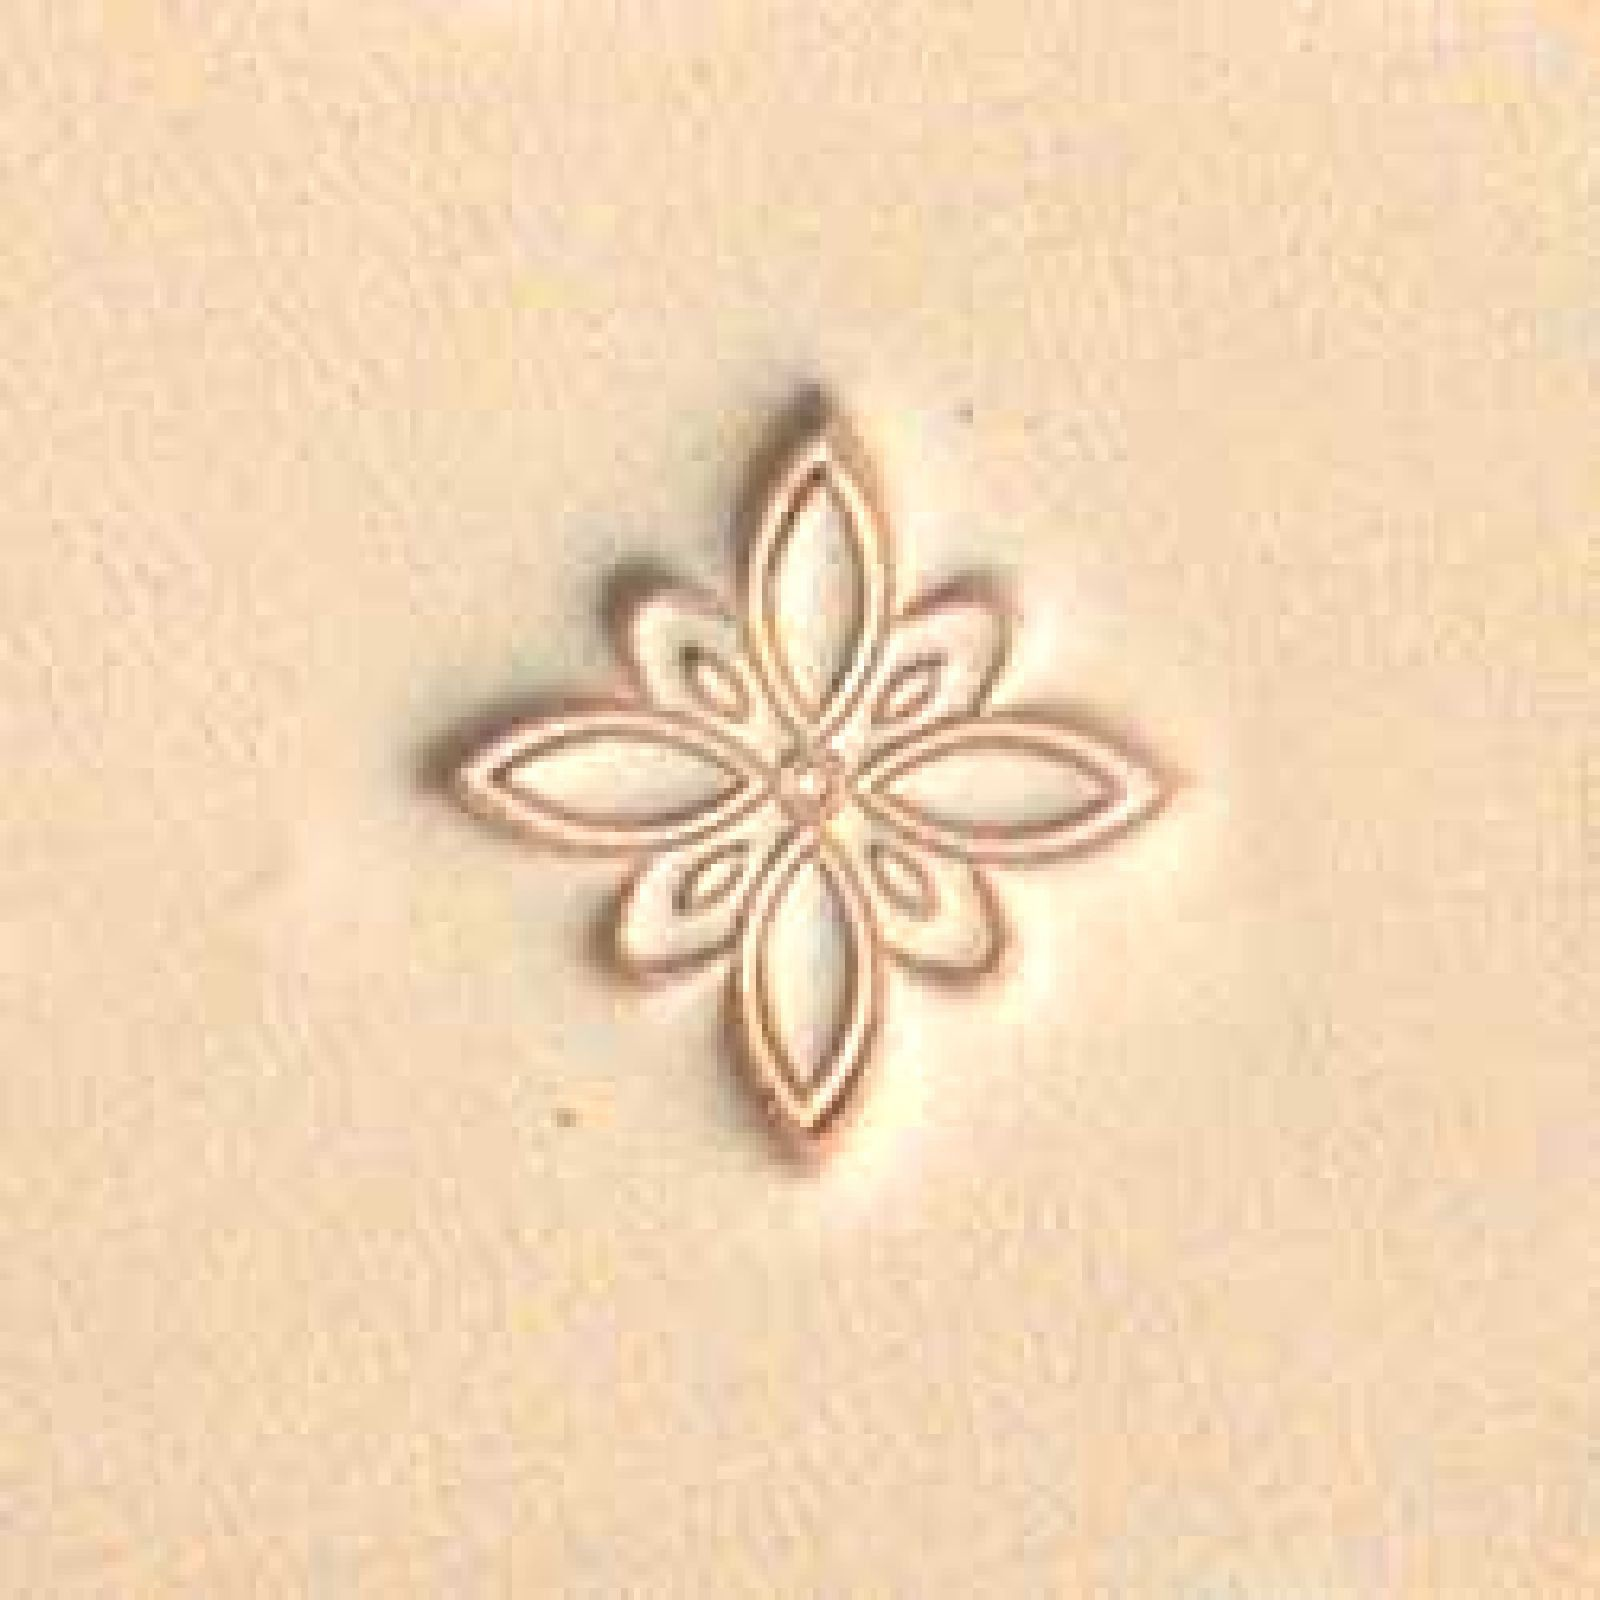 J615 Flower Leather Stamp Craftool Tandy Craft 6615-00 Decorate Stamping